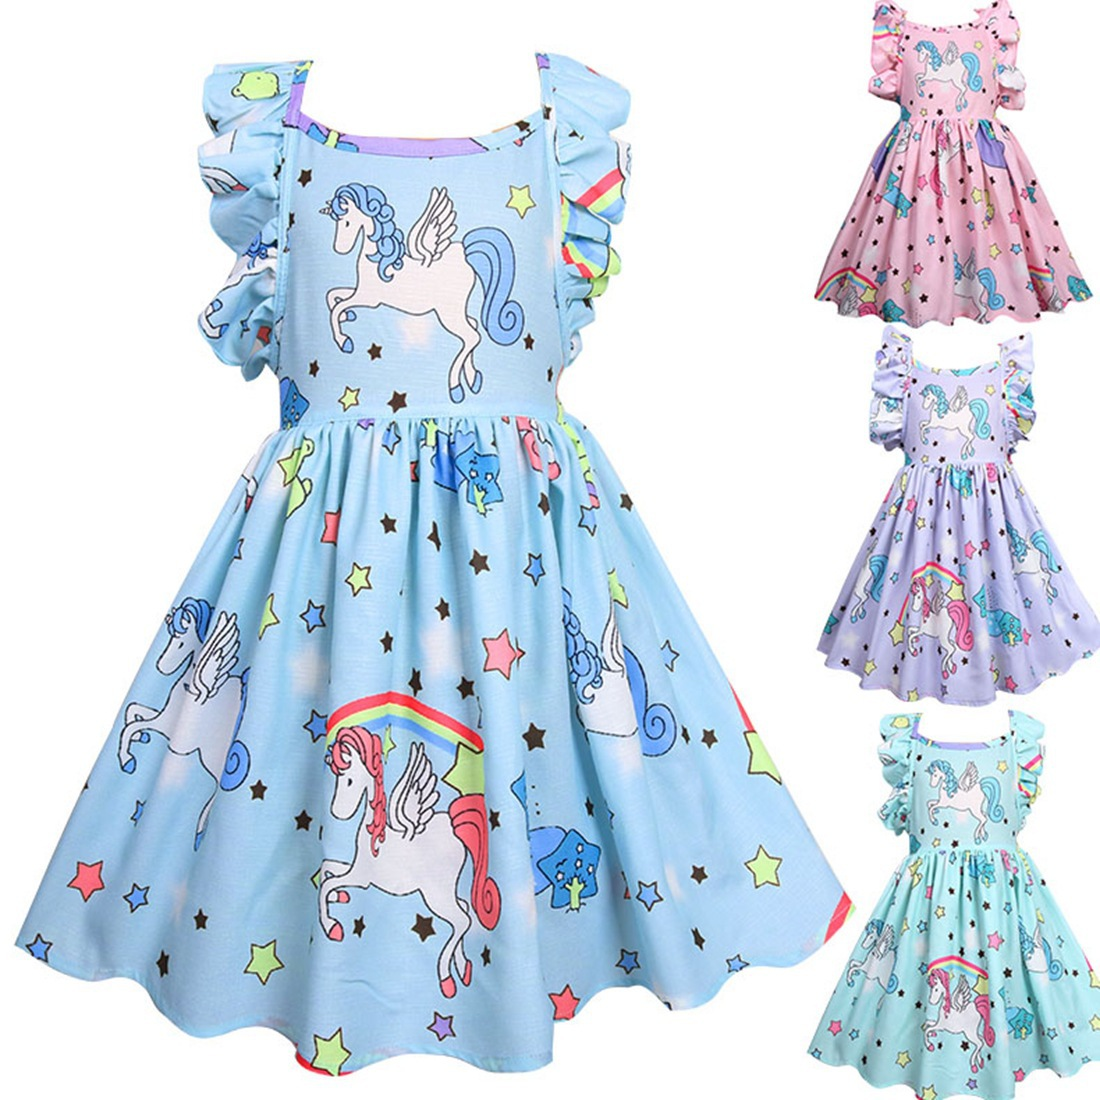 Pony Unicorn Rainbow Dress Girls Dresses For Party and Wedding Backless A-line Dress For Kids Clothes Unicornio Party Dress strappy backless dress for women